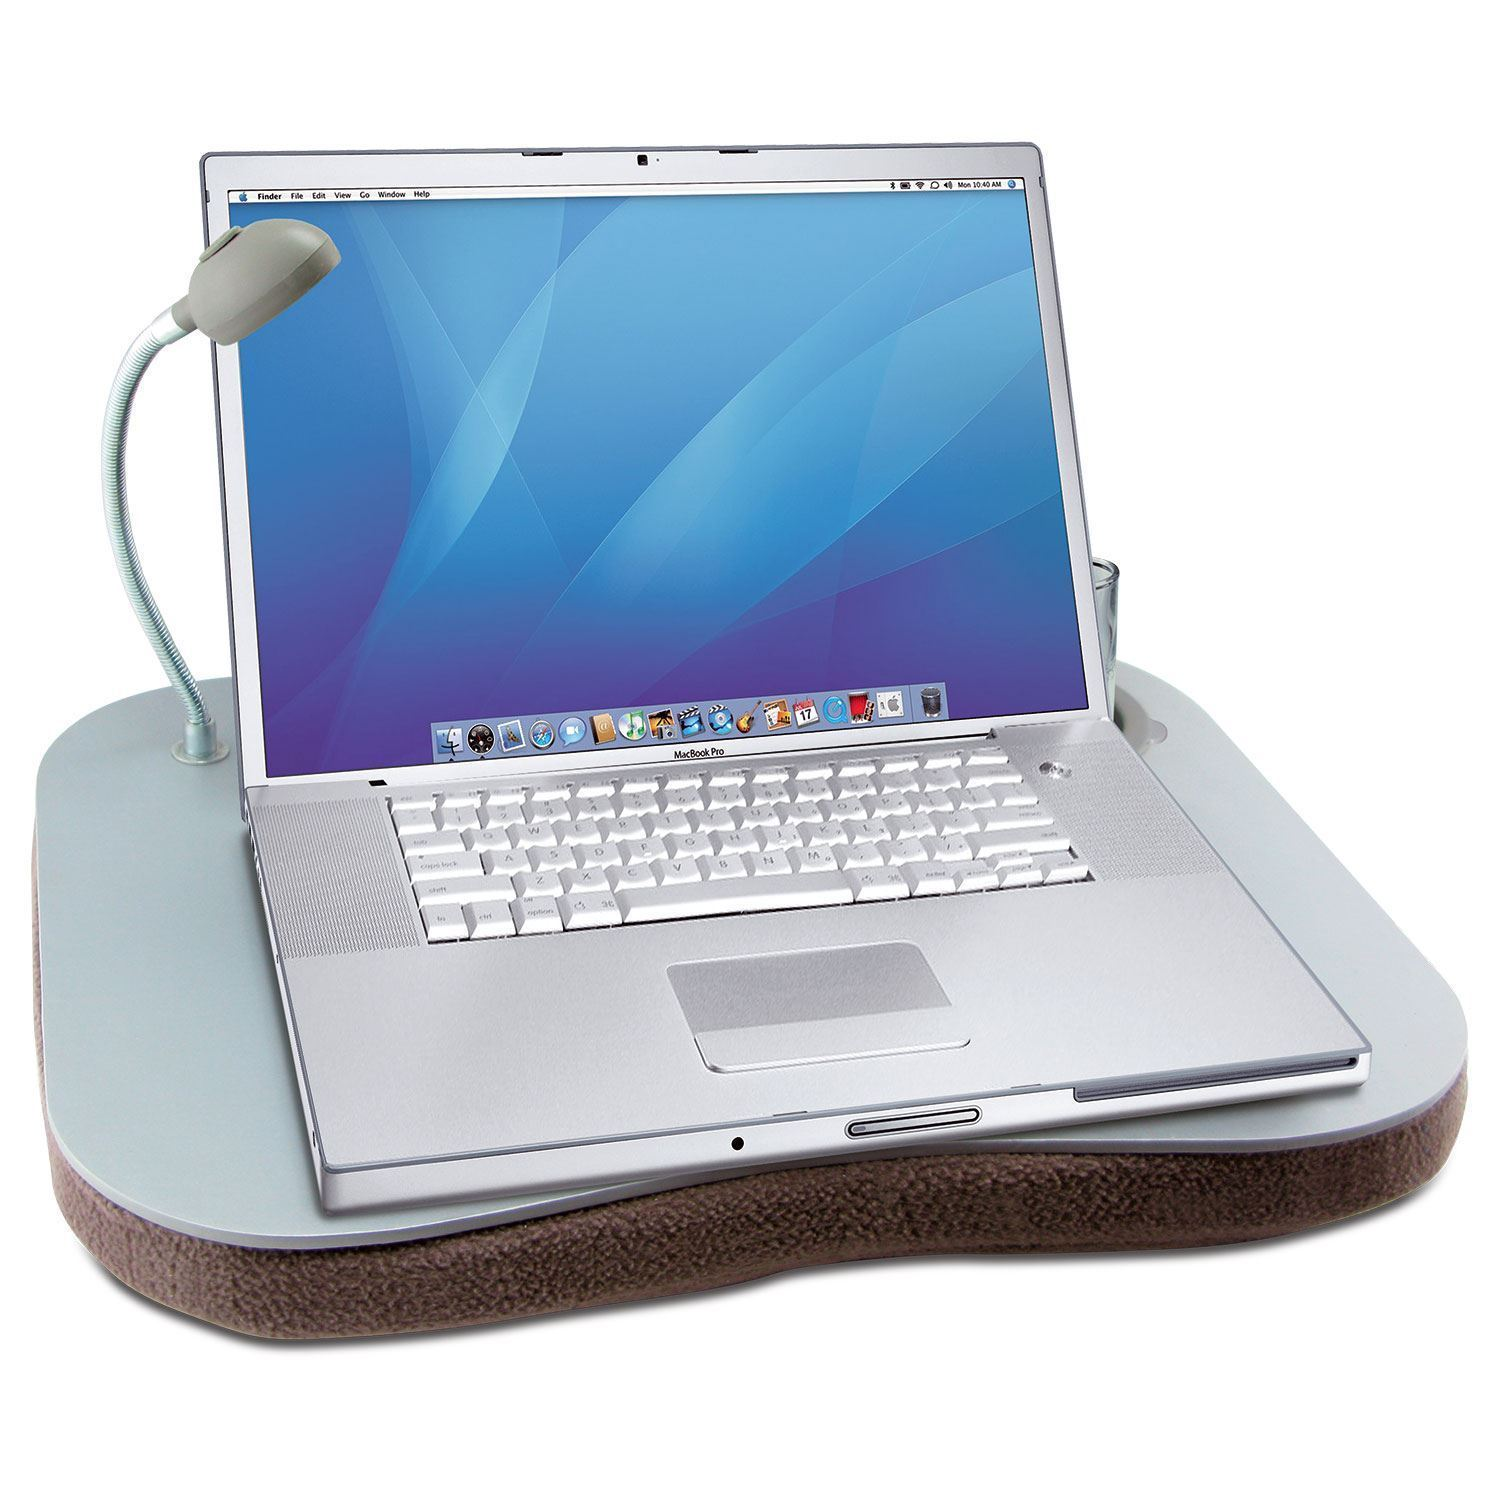 NEW LAPTOP TRAY EXTRA LARGE GREY PADDED CUSHION REST